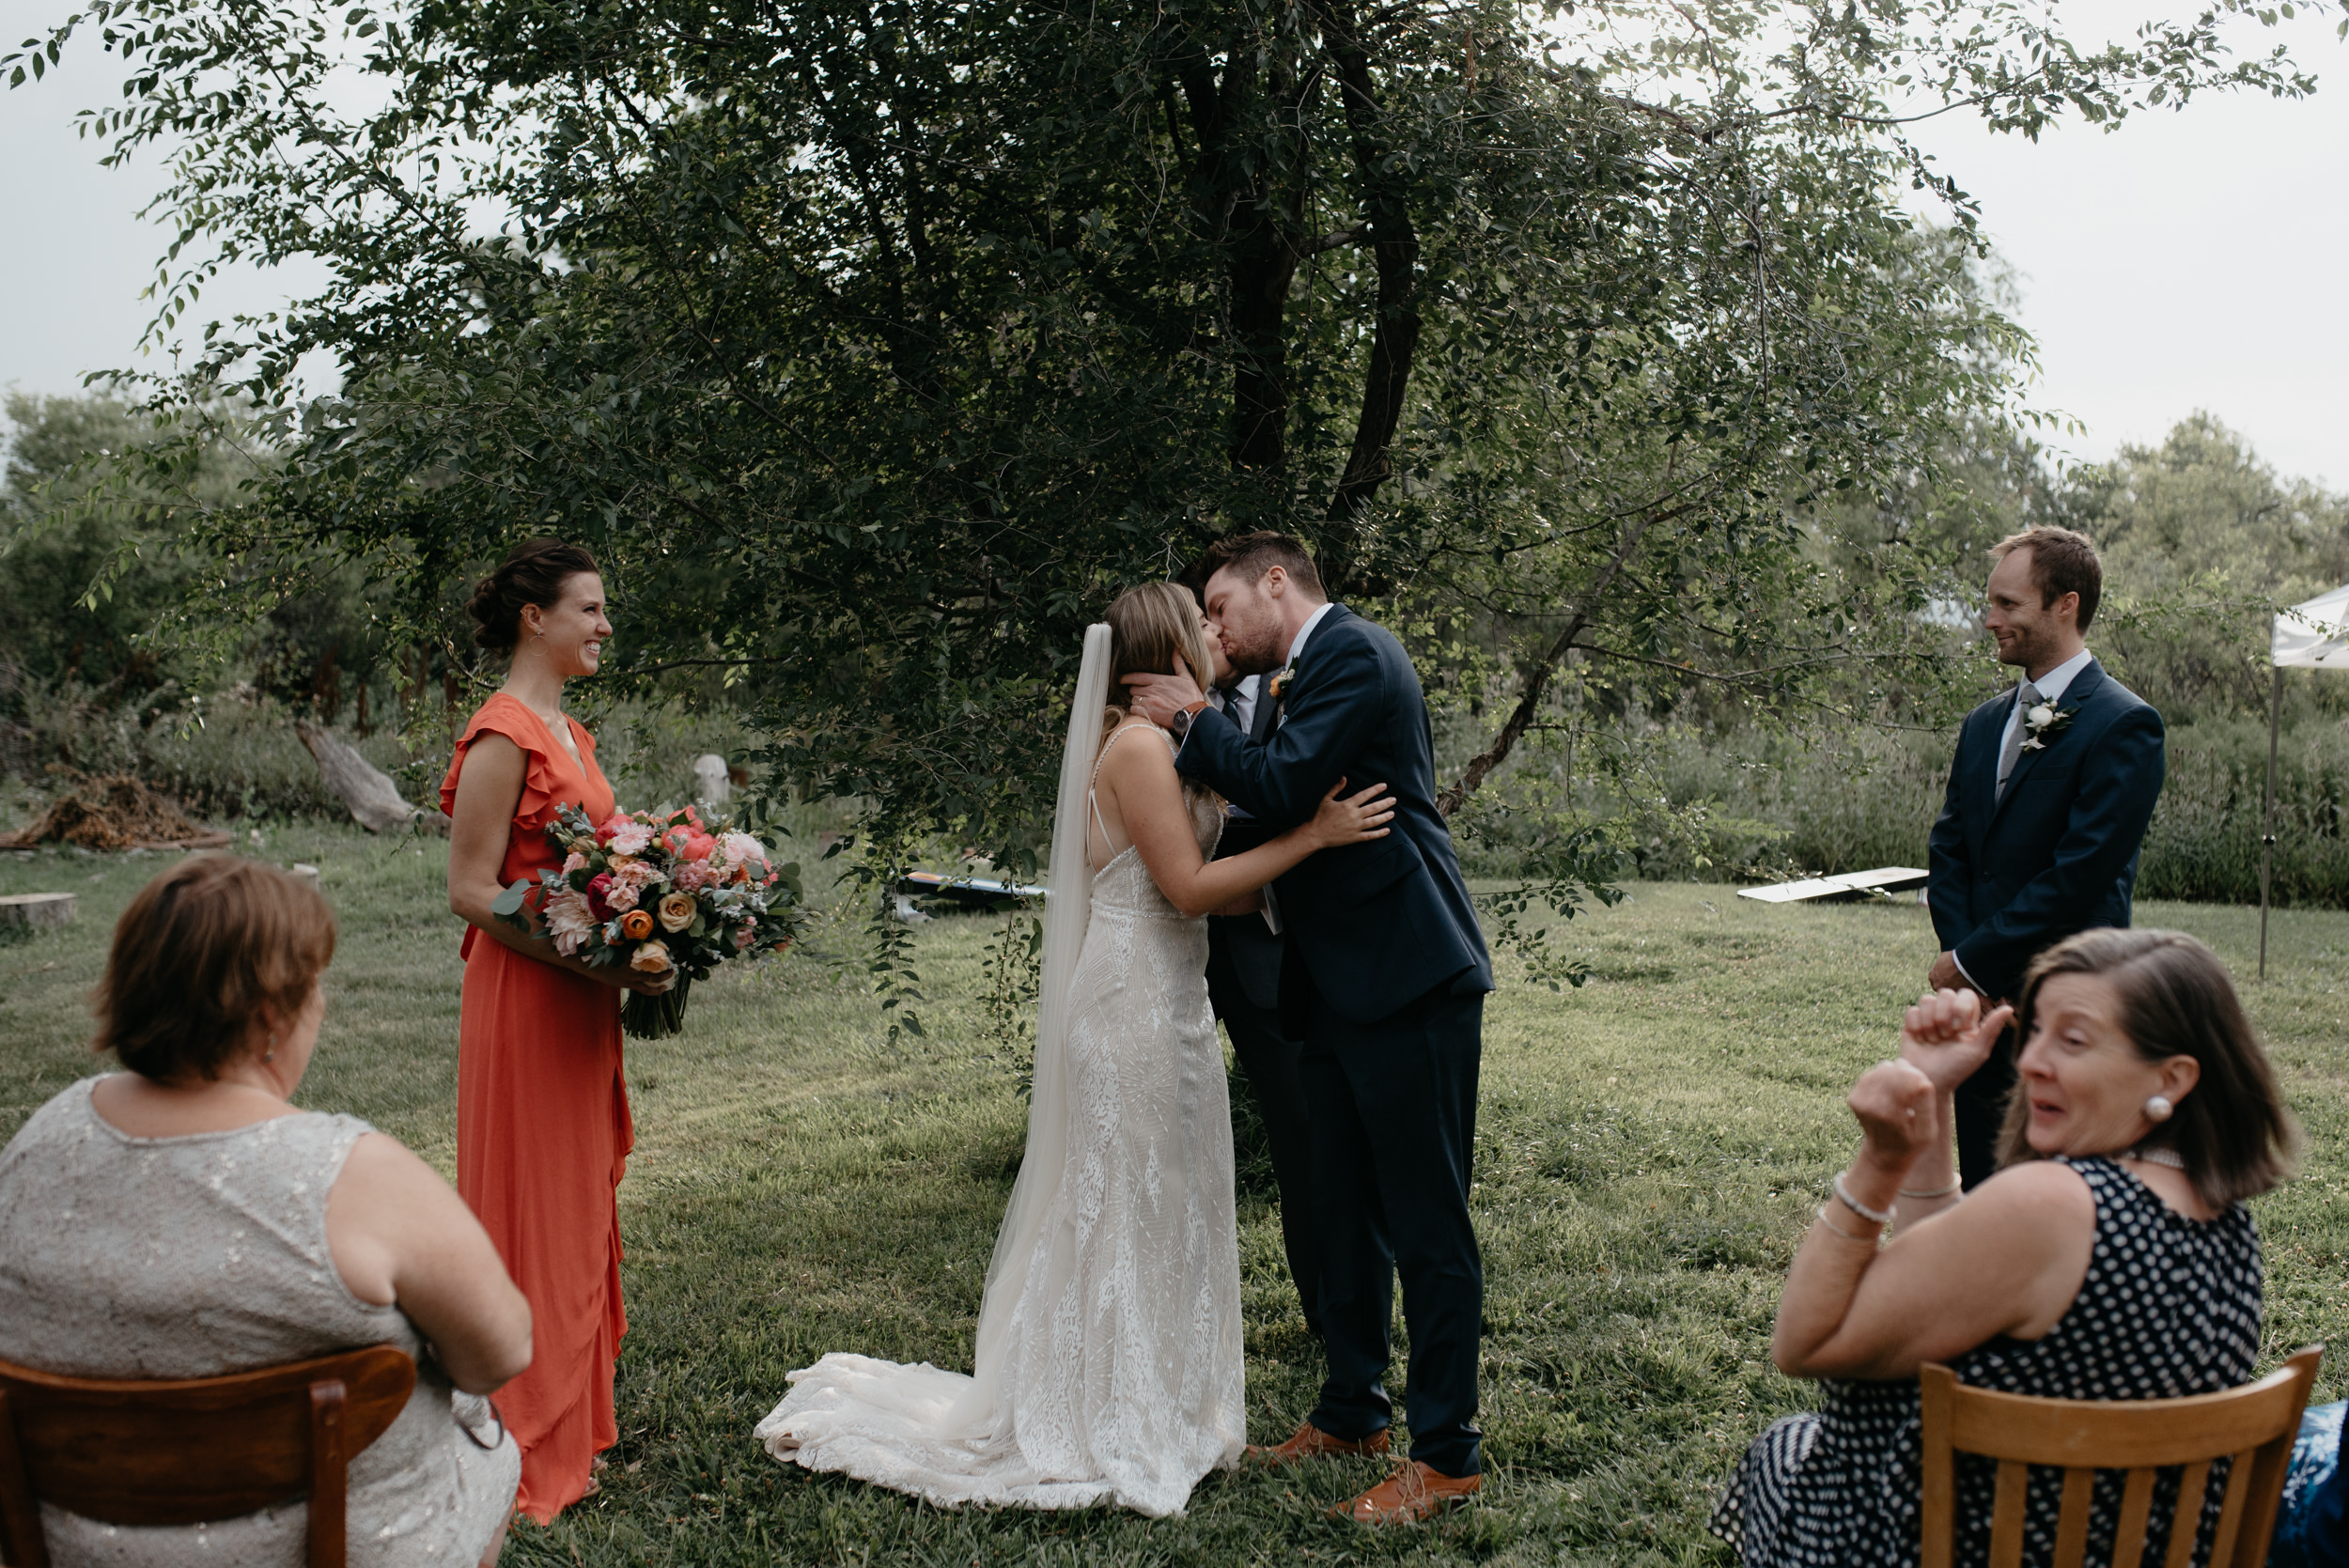 First kiss at Boulder, Colorado intimate wedding ceremony. Boulder, Colorado wedding photographer.